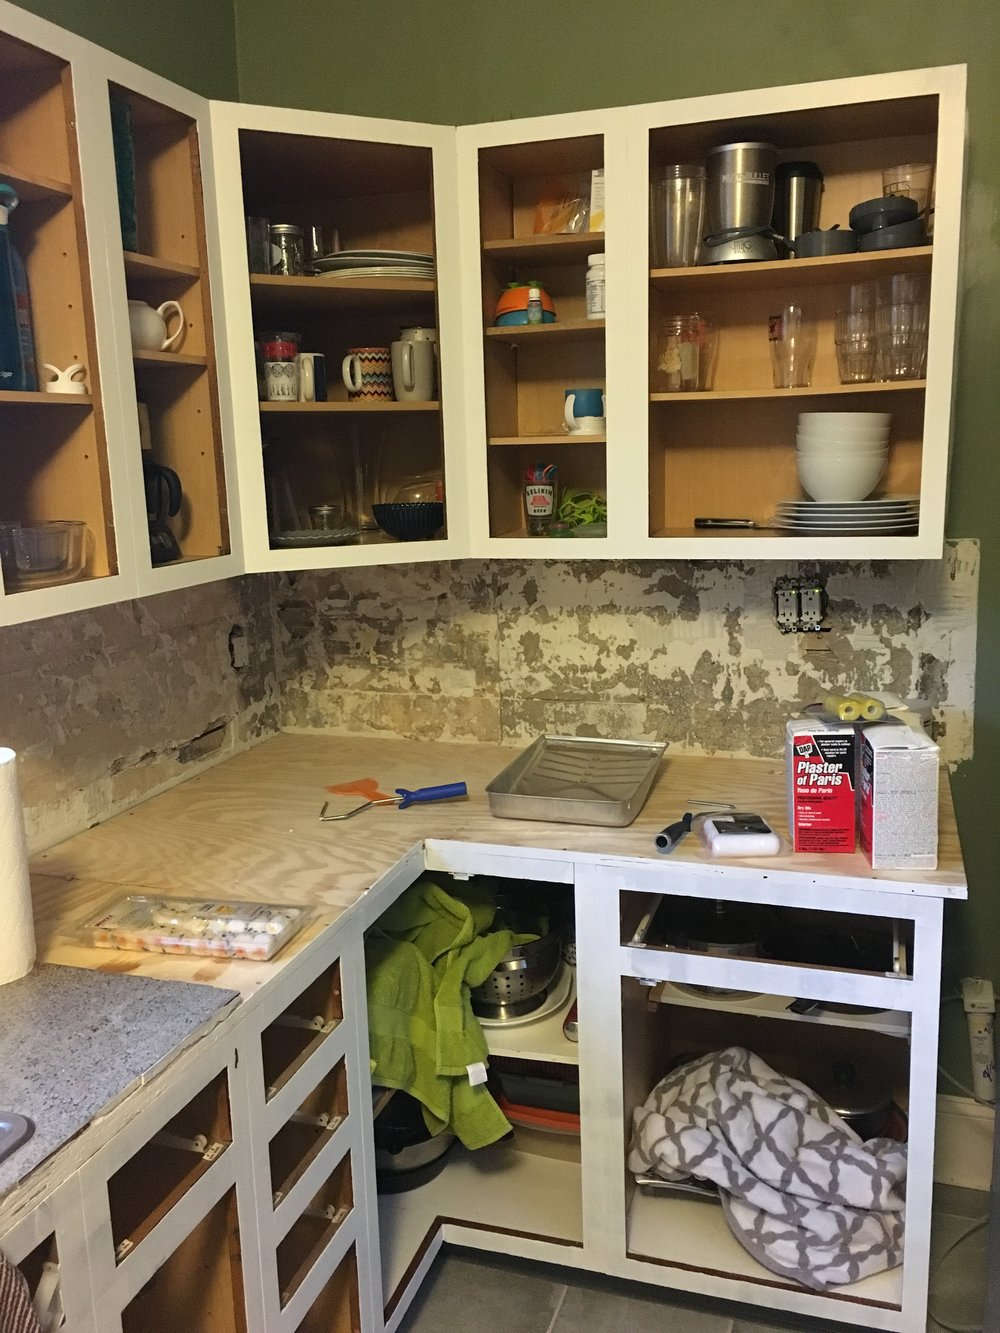 A coat of paint on the cabinet bases and Plaster of Paris for wall patching